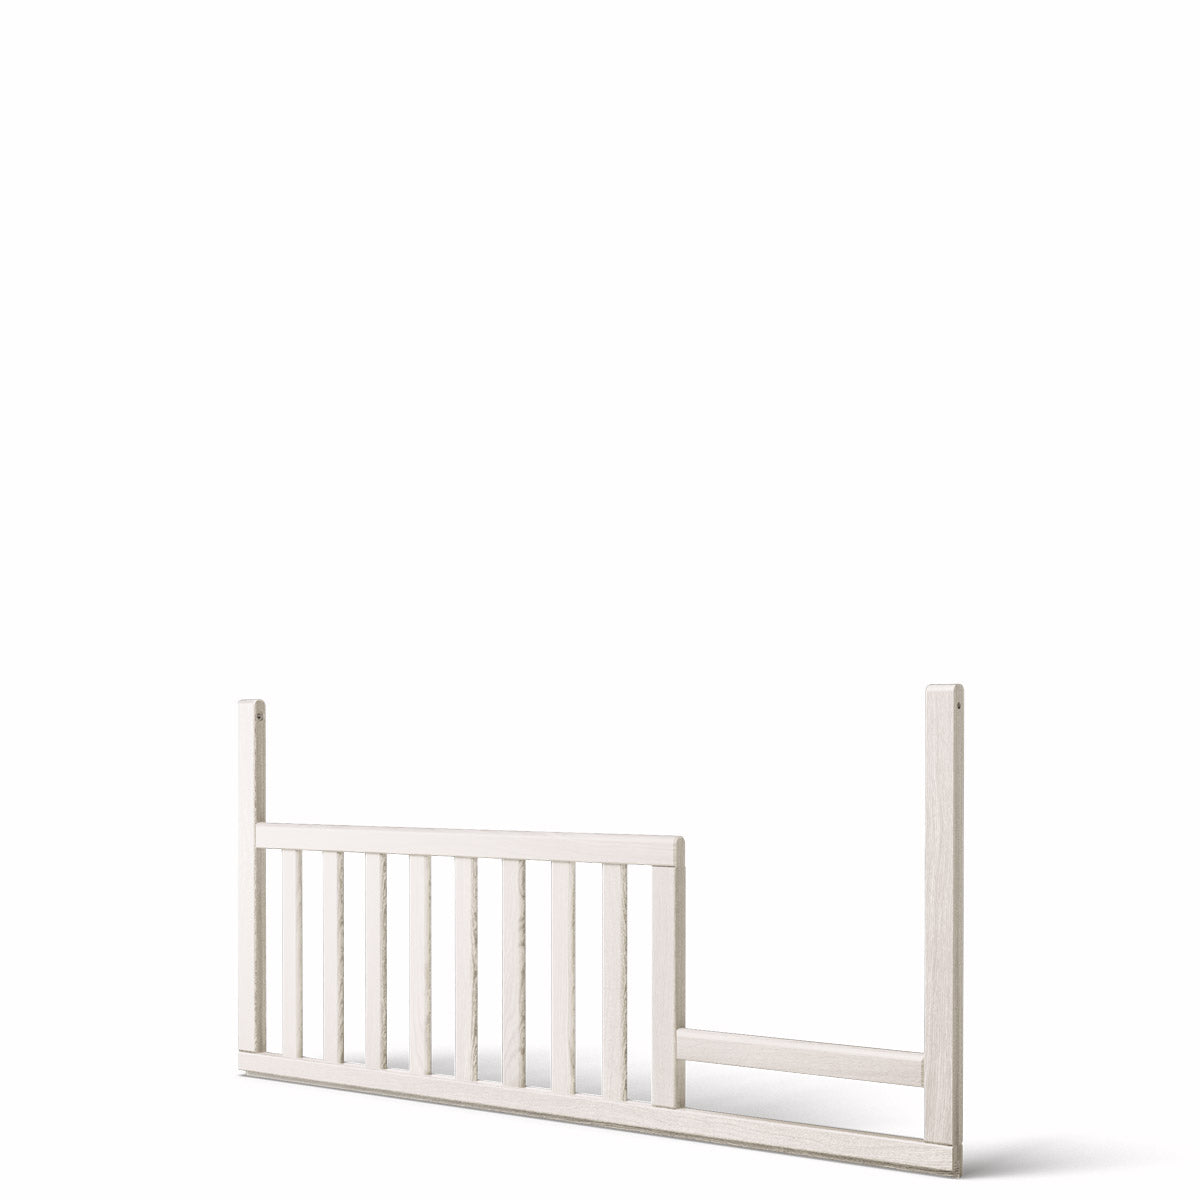 Romina Cleopatra Toddler Rail For 7501/7502